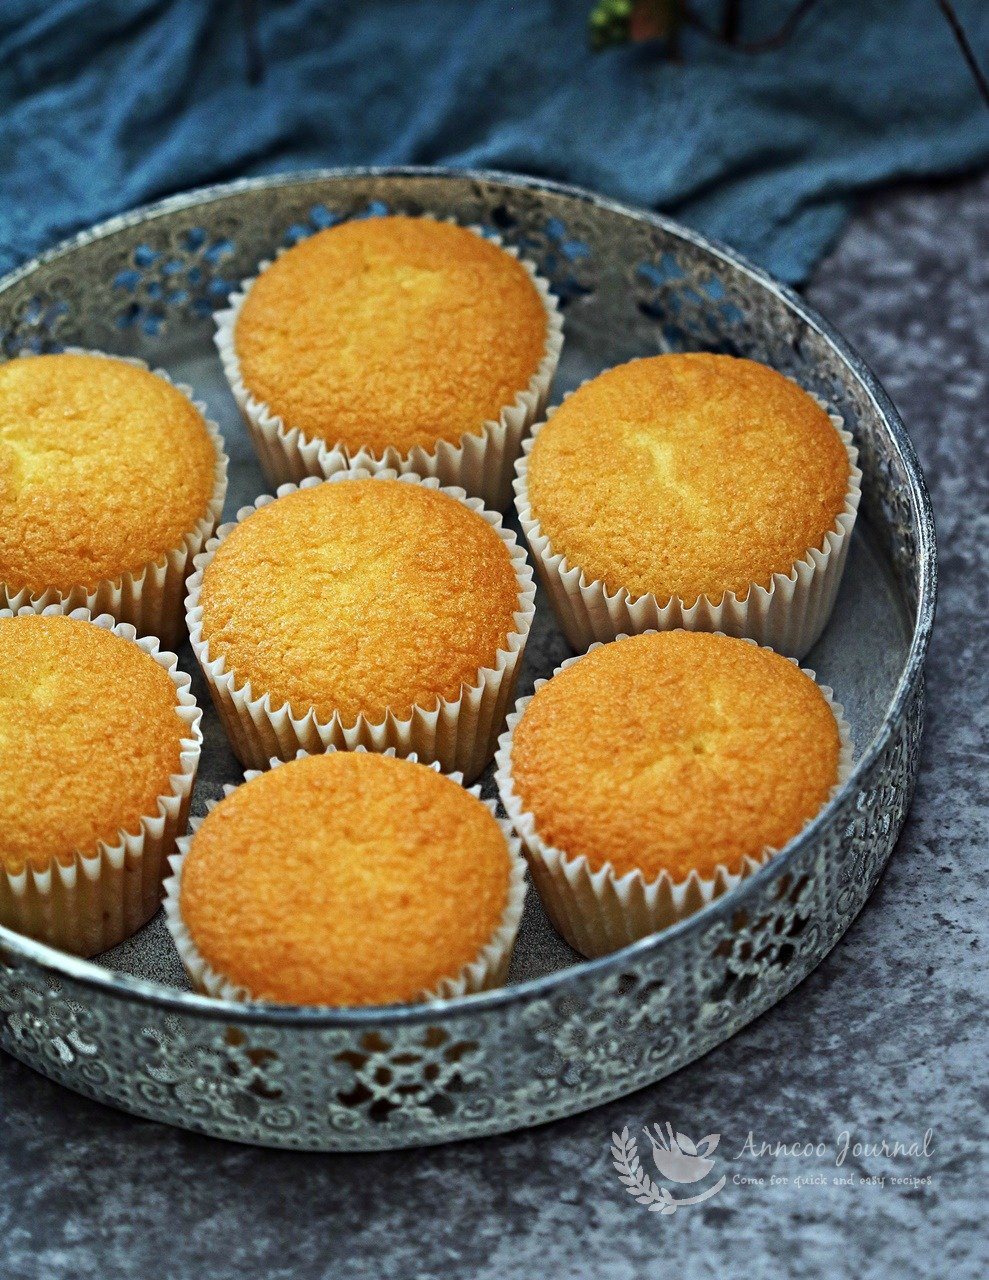 fluffy spongy cupcakes